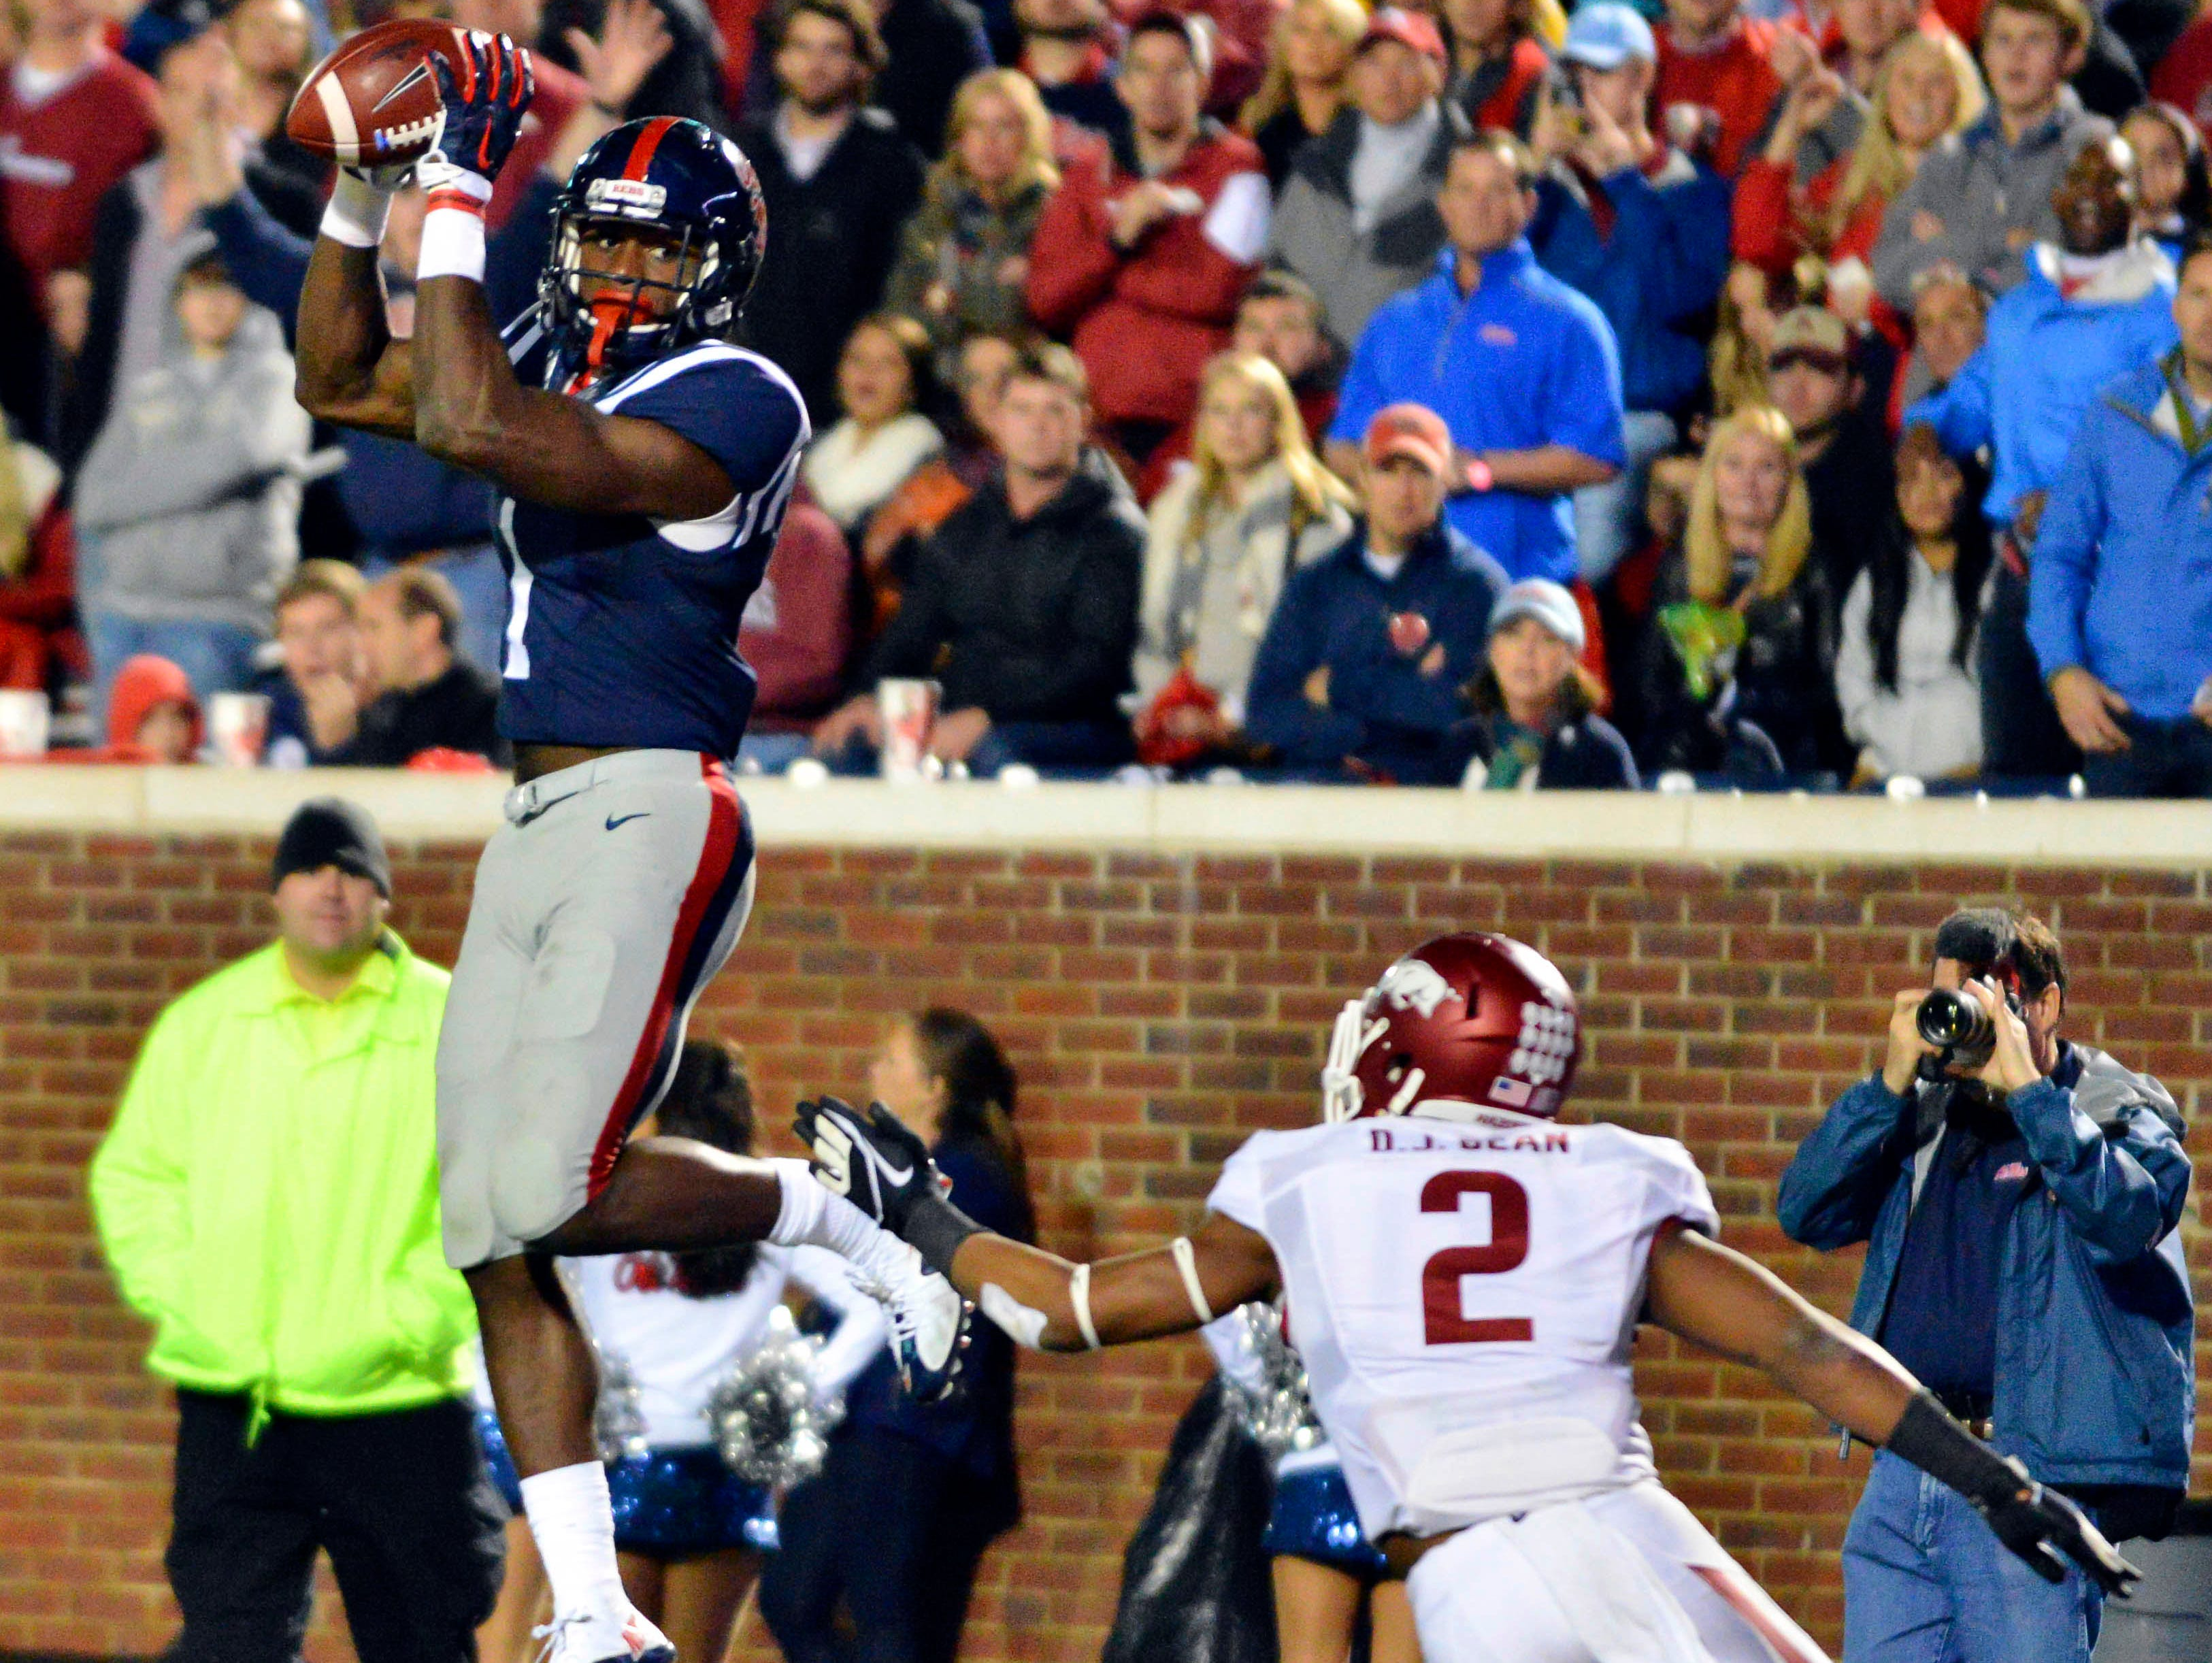 Ole Miss wide receiver Laquon Treadwell and the Rebels are bouncing back well from the team's loss last Saturday to Arkansas.